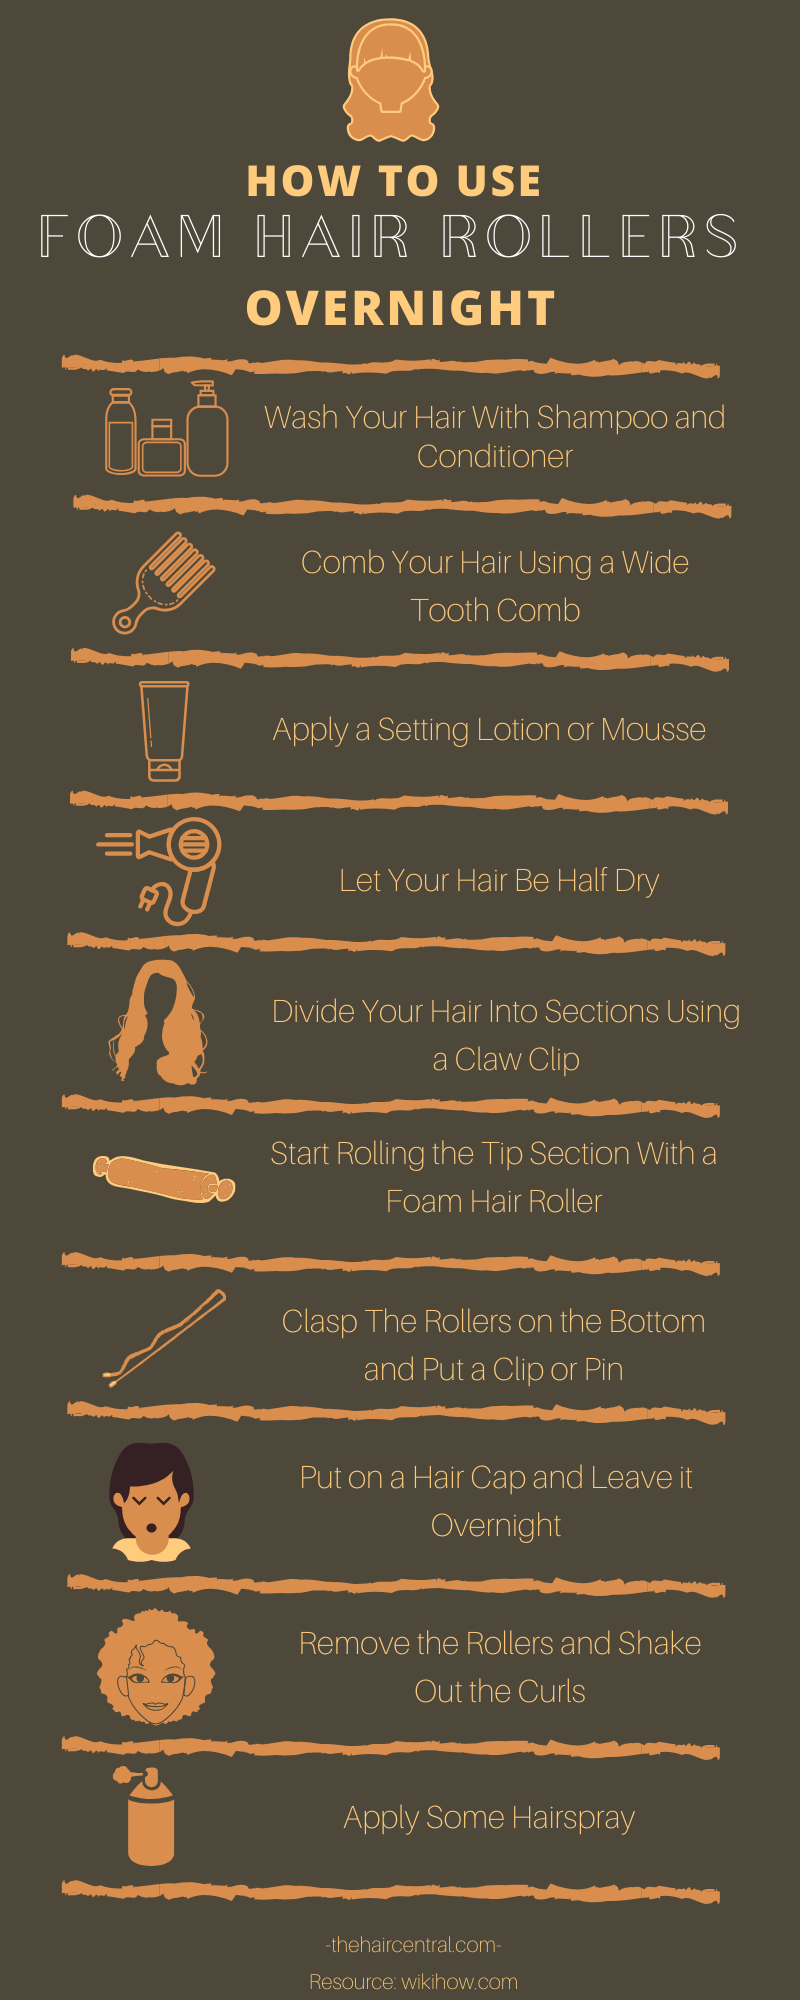 how to use foam hair rollers overnight